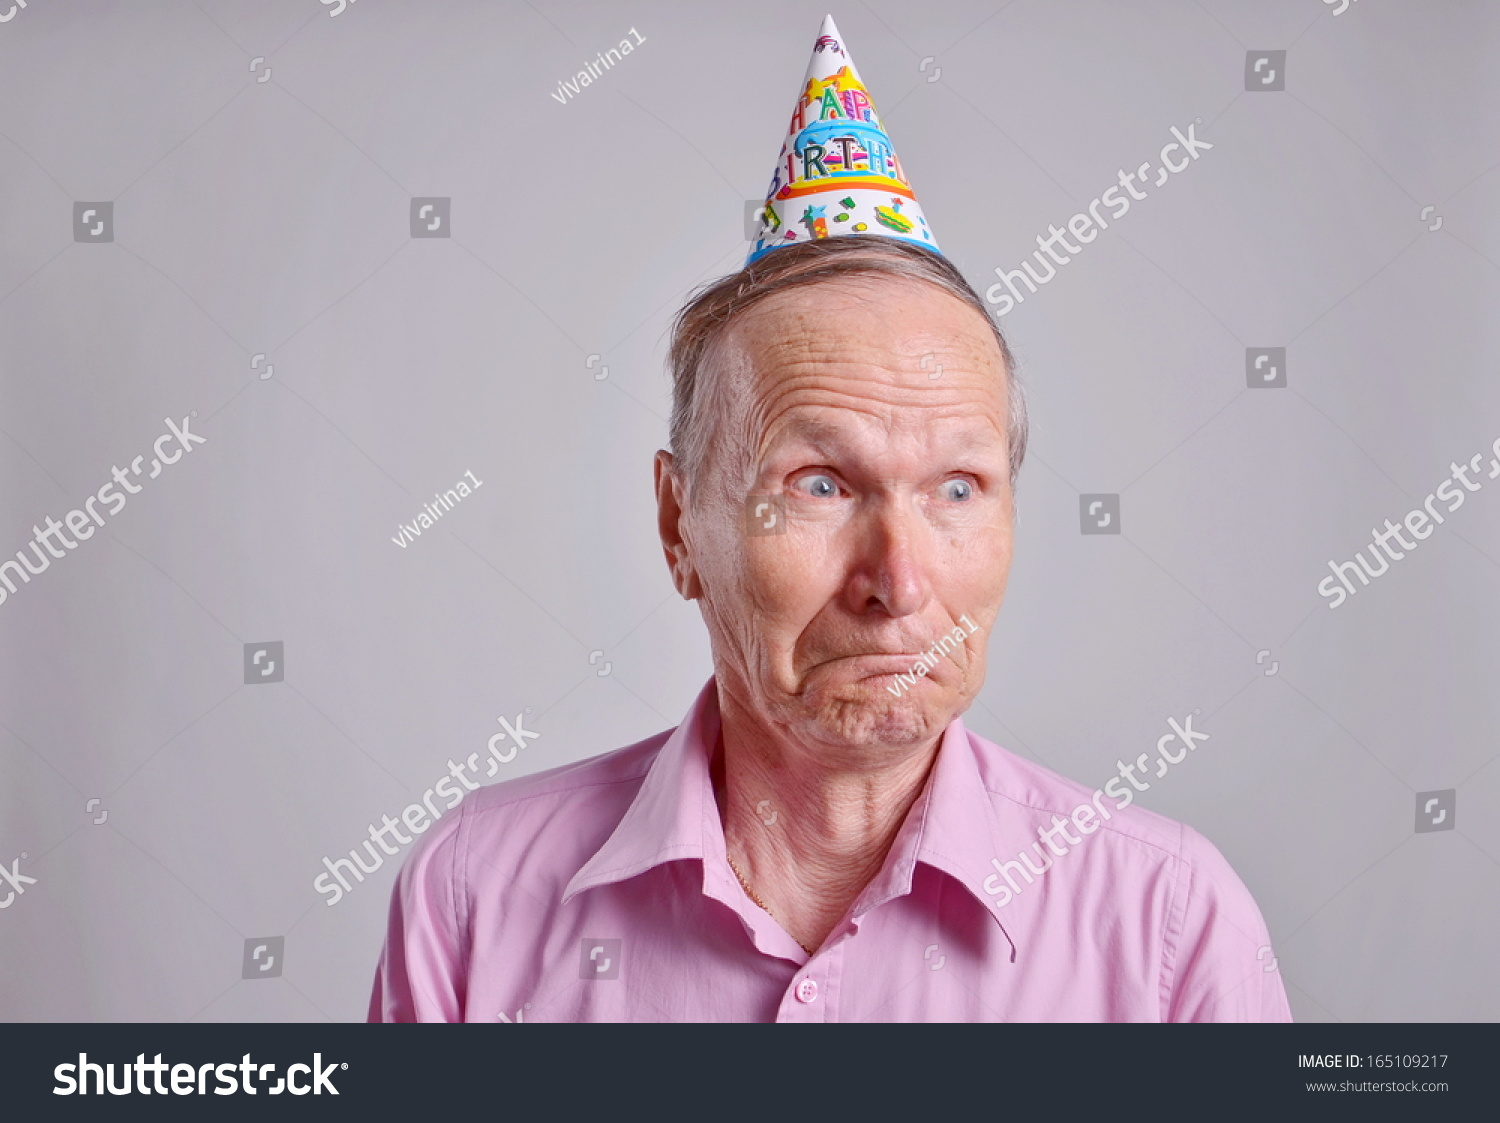 Funny Old Man Birthday Pictures